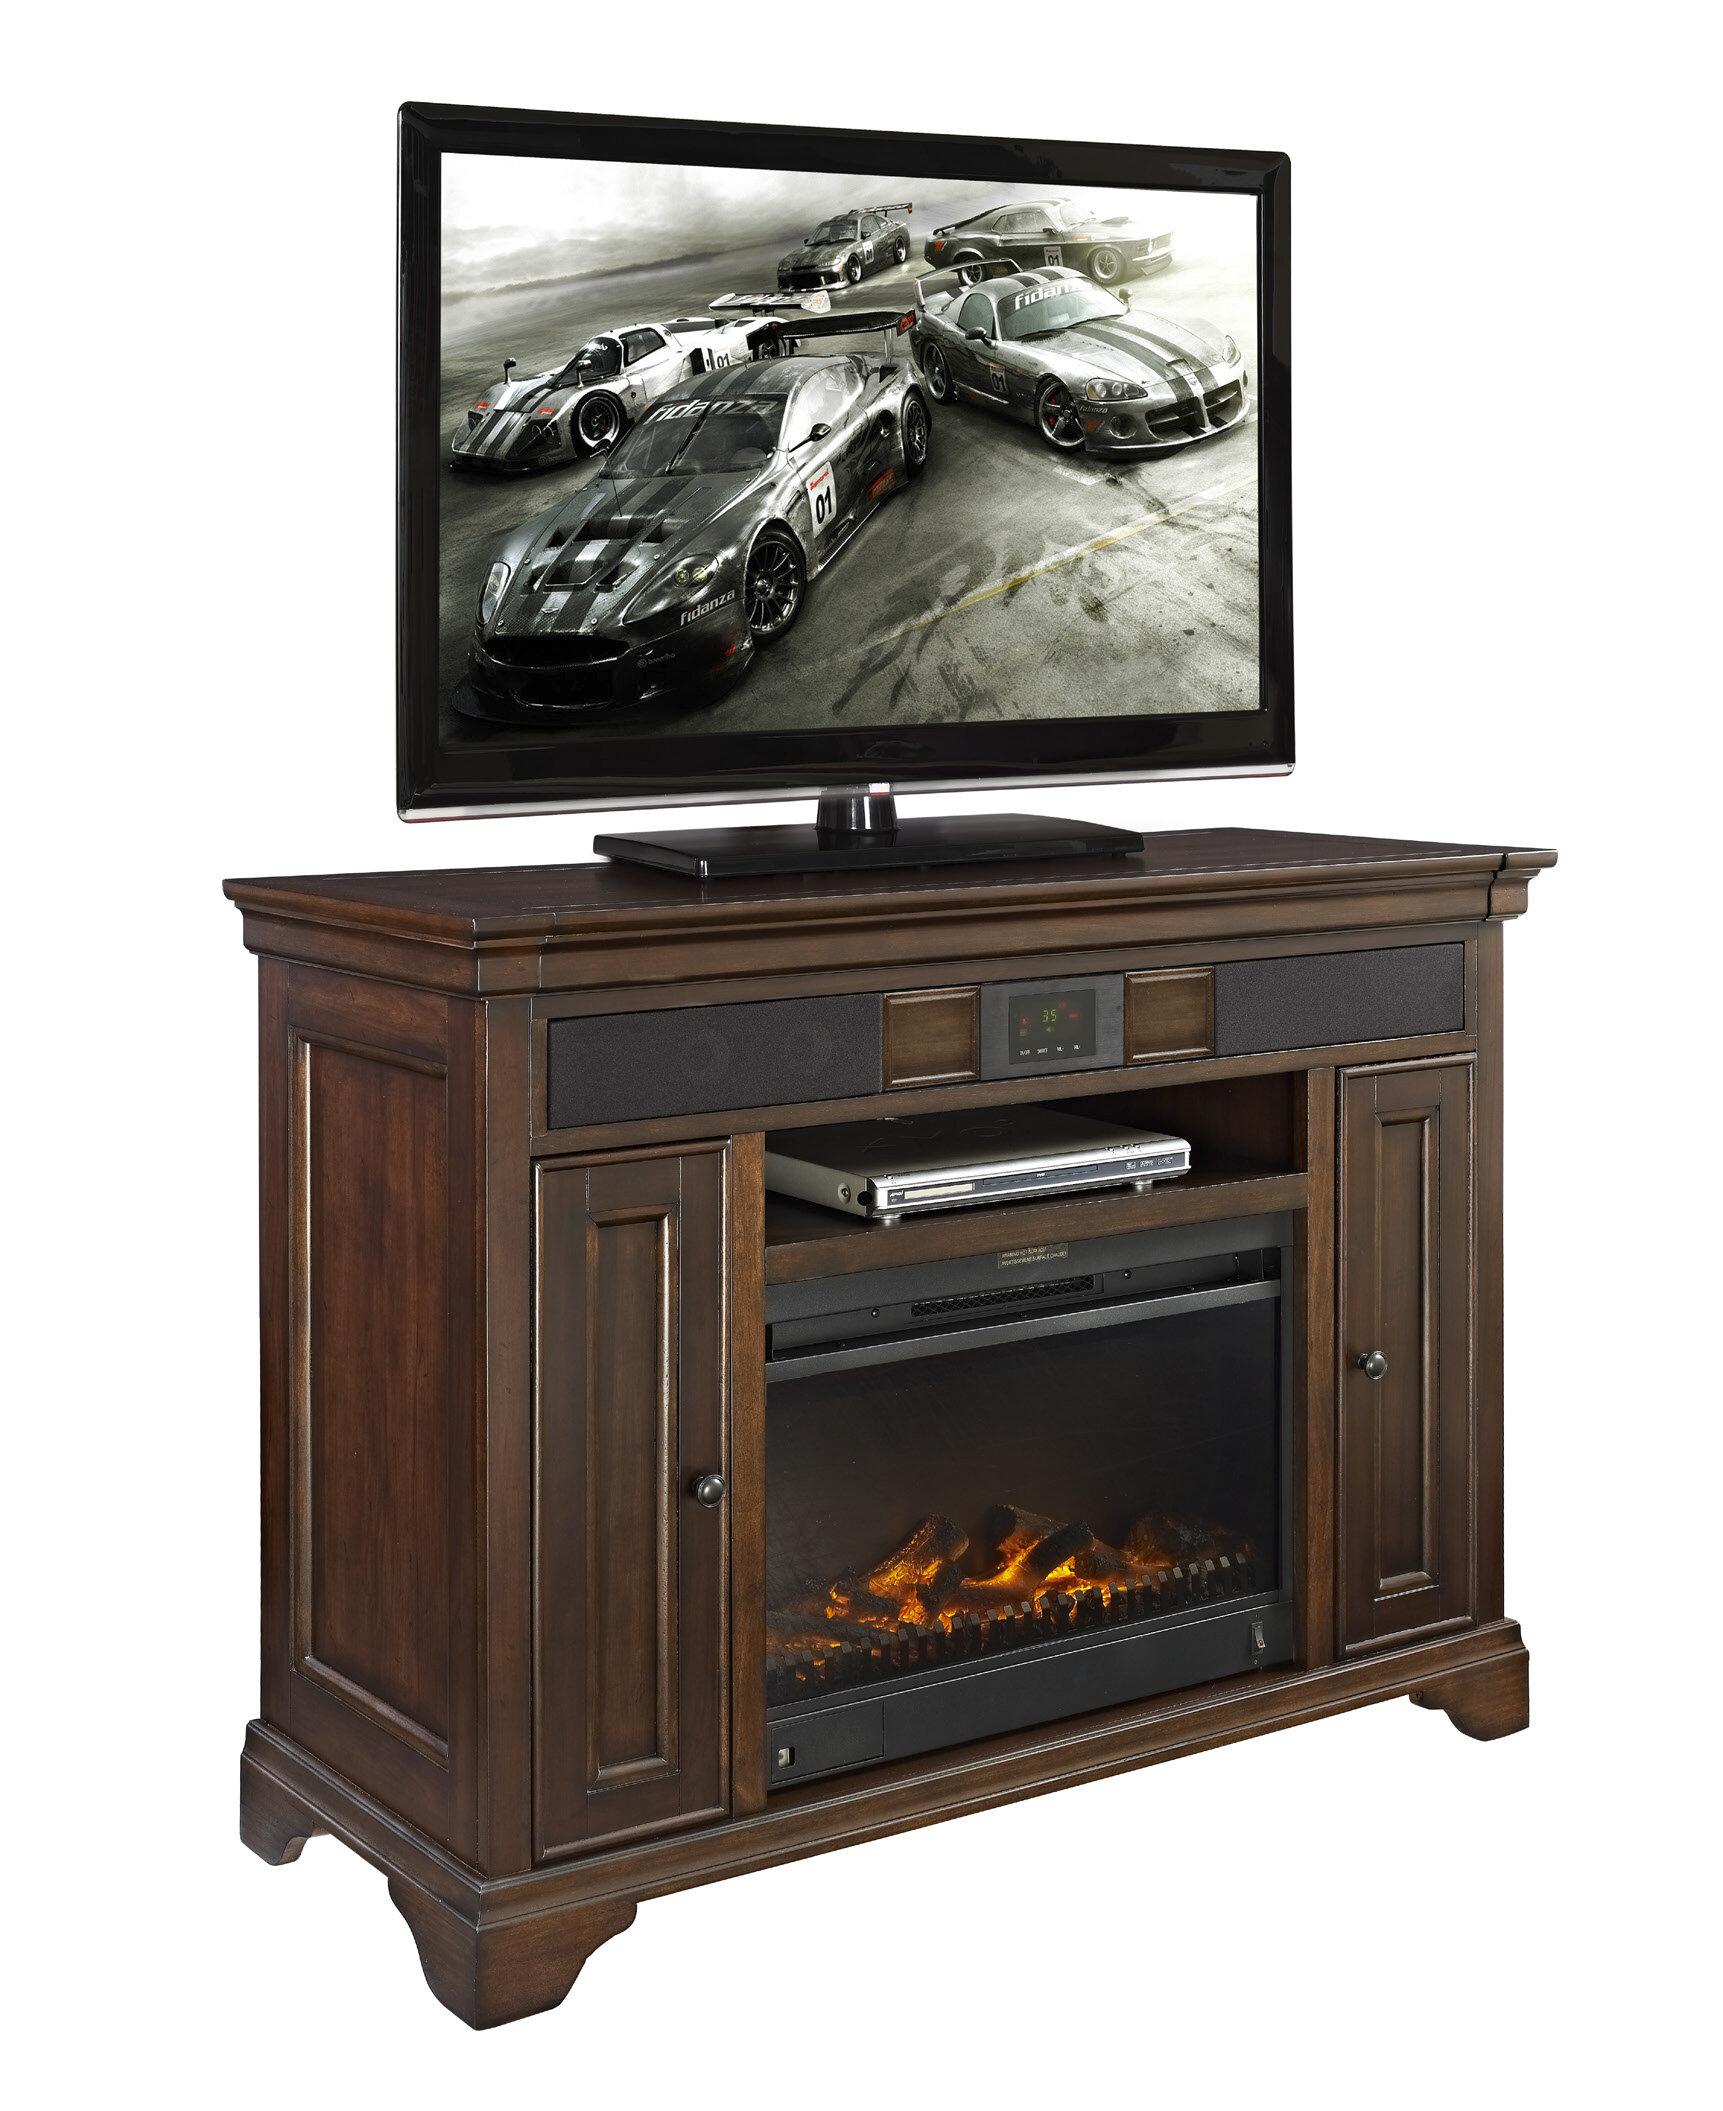 charlton home grigor tv stand for tvs up to 55 with fireplace included w